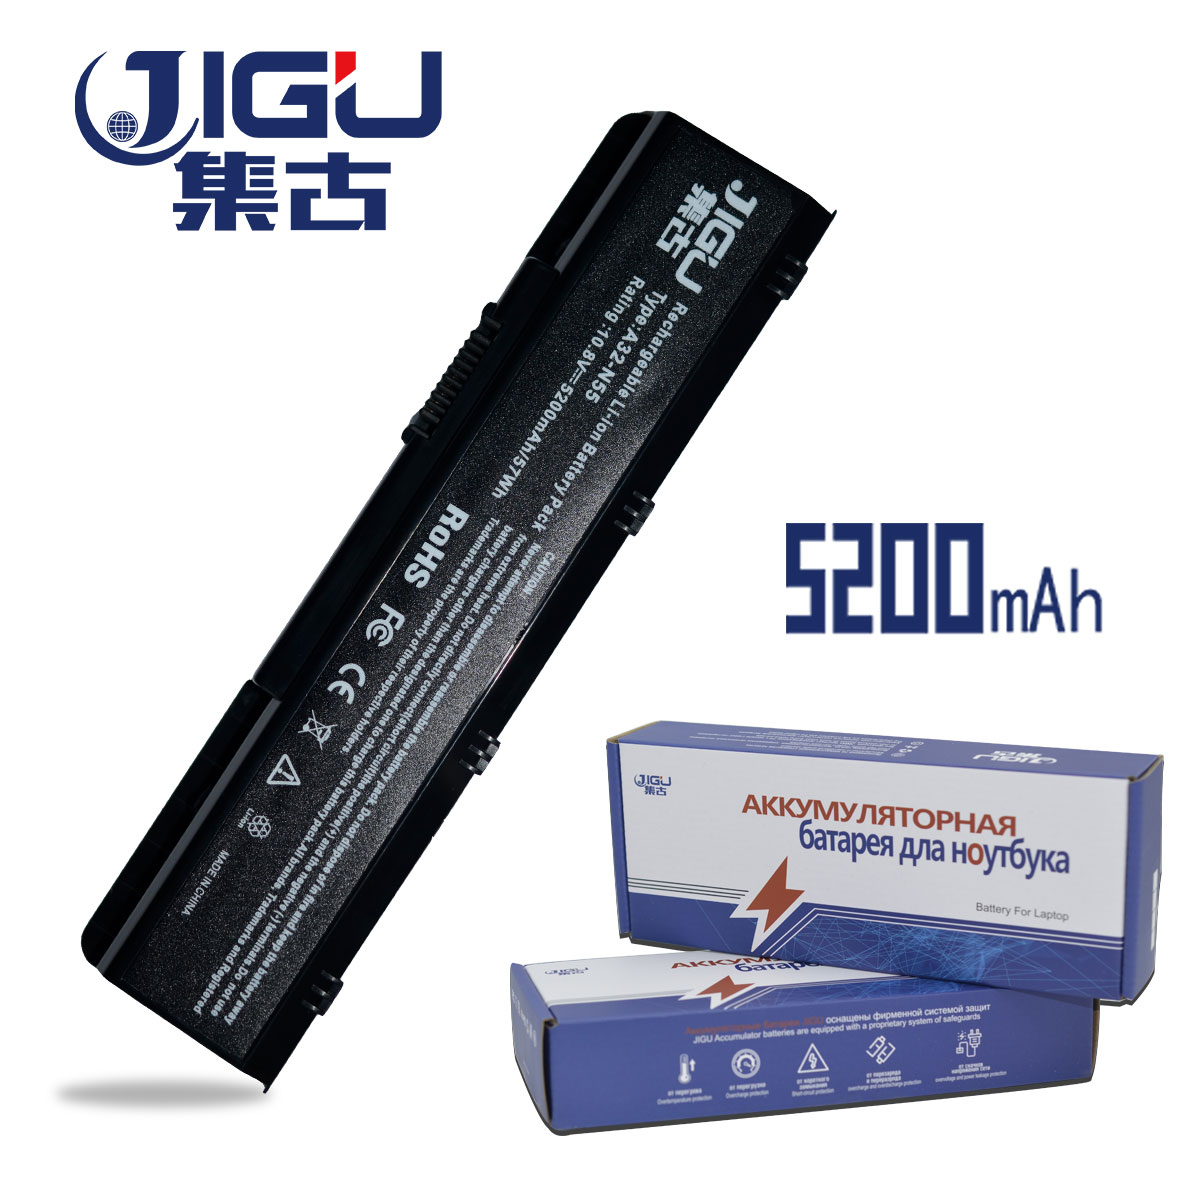 JIGU 5200MAH Laptop Battery A32-N55 For Asus N45 N45E N45S N45SF N55 N55E N55S N55SF N75 ...